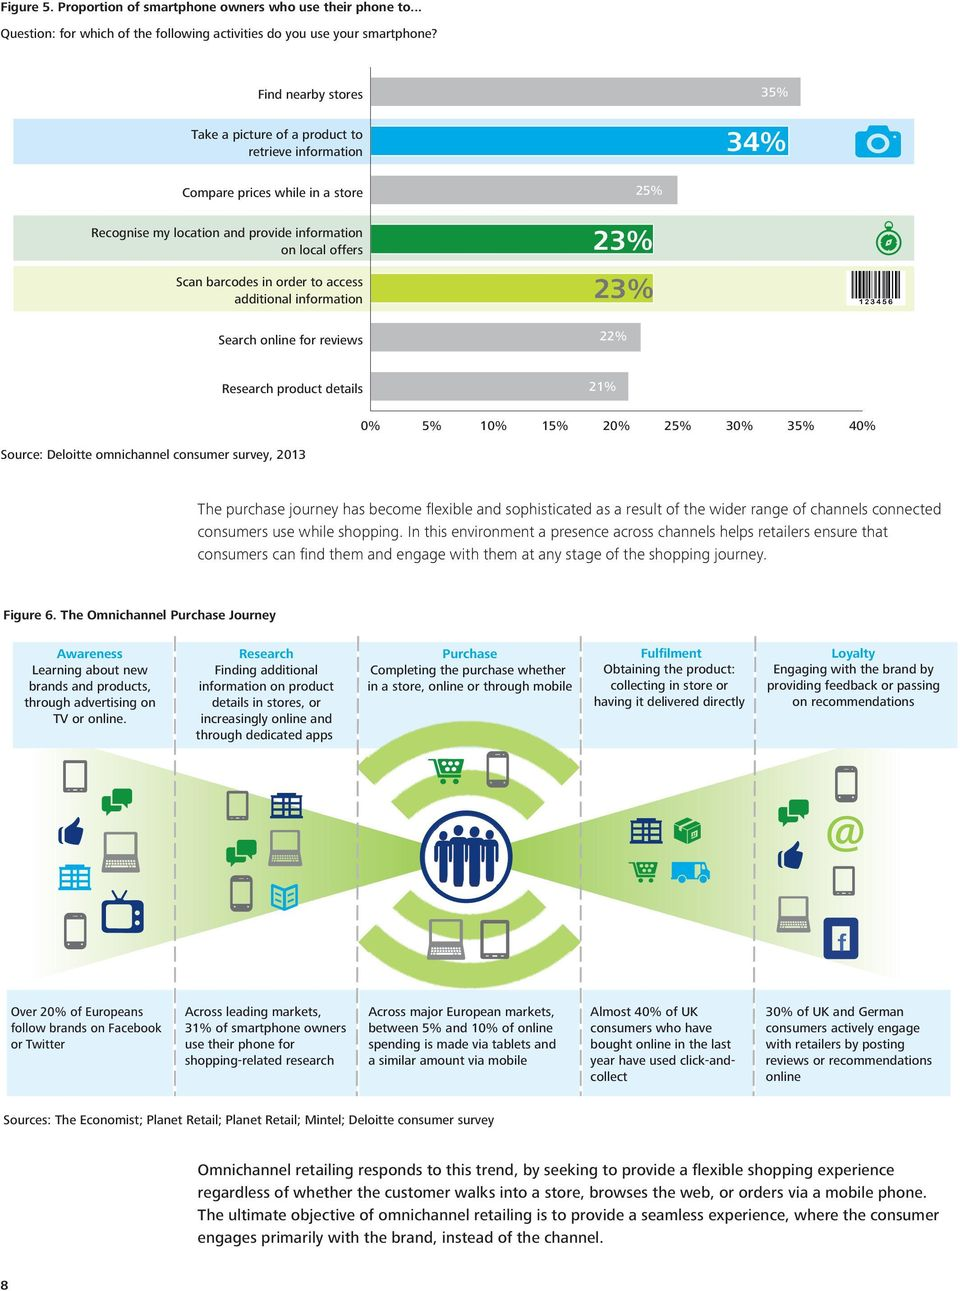 access additional information Search online for reviews 25% 23% 23% 22% Research product details 21% 0% 5% 10% 15% 20% 25% 30% 35% 40% Source: Deloitte omnichannel consumer survey, 2013 The purchase